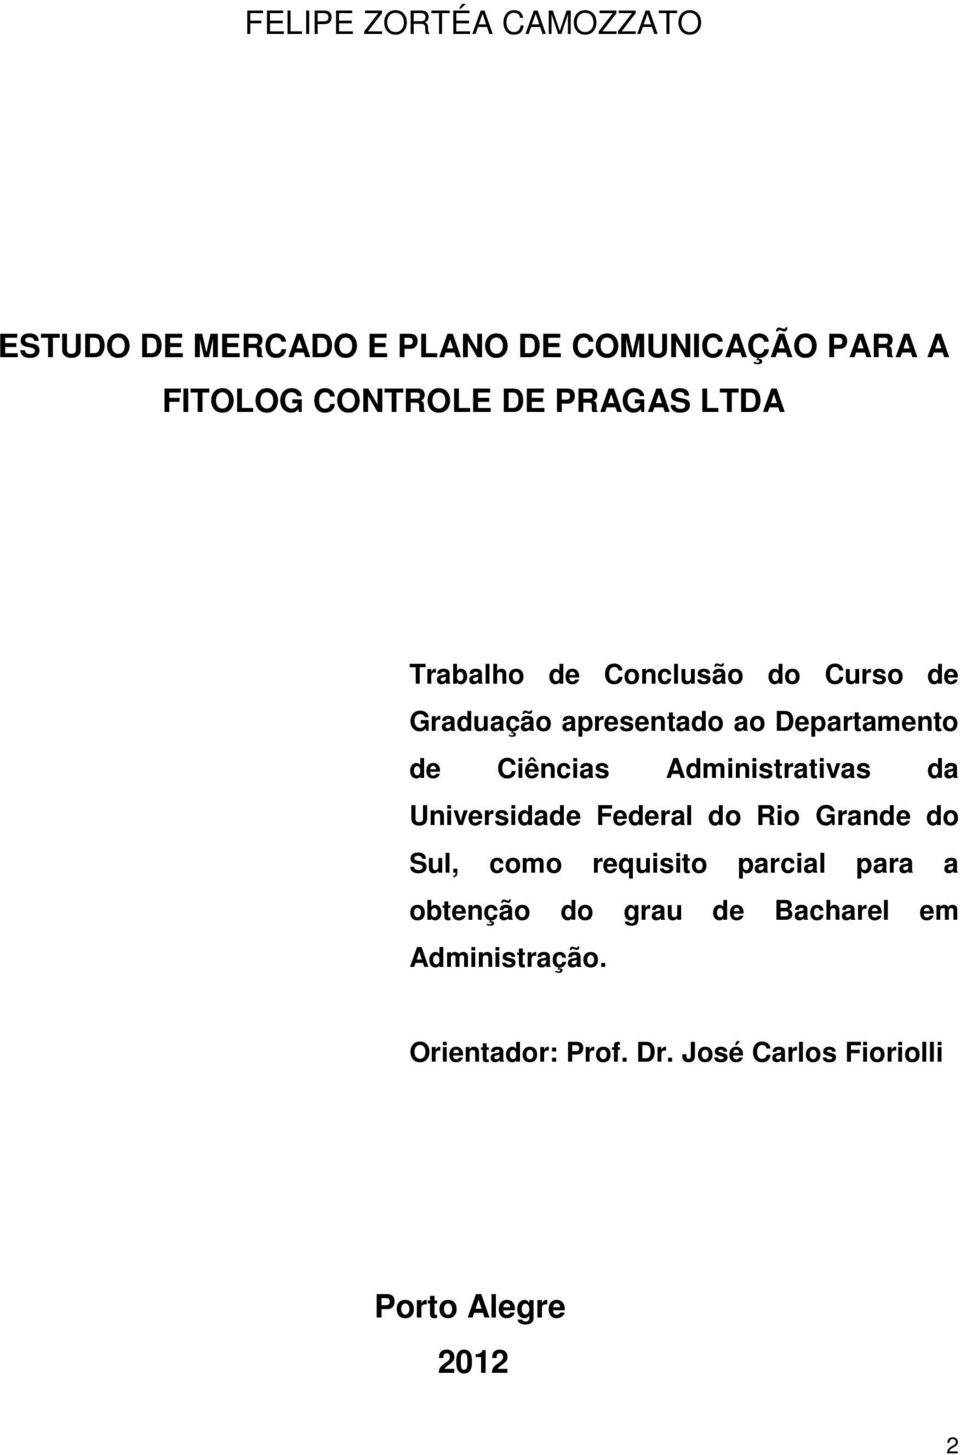 Administrativas da Universidade Federal do Rio Grande do Sul, como requisito parcial para a